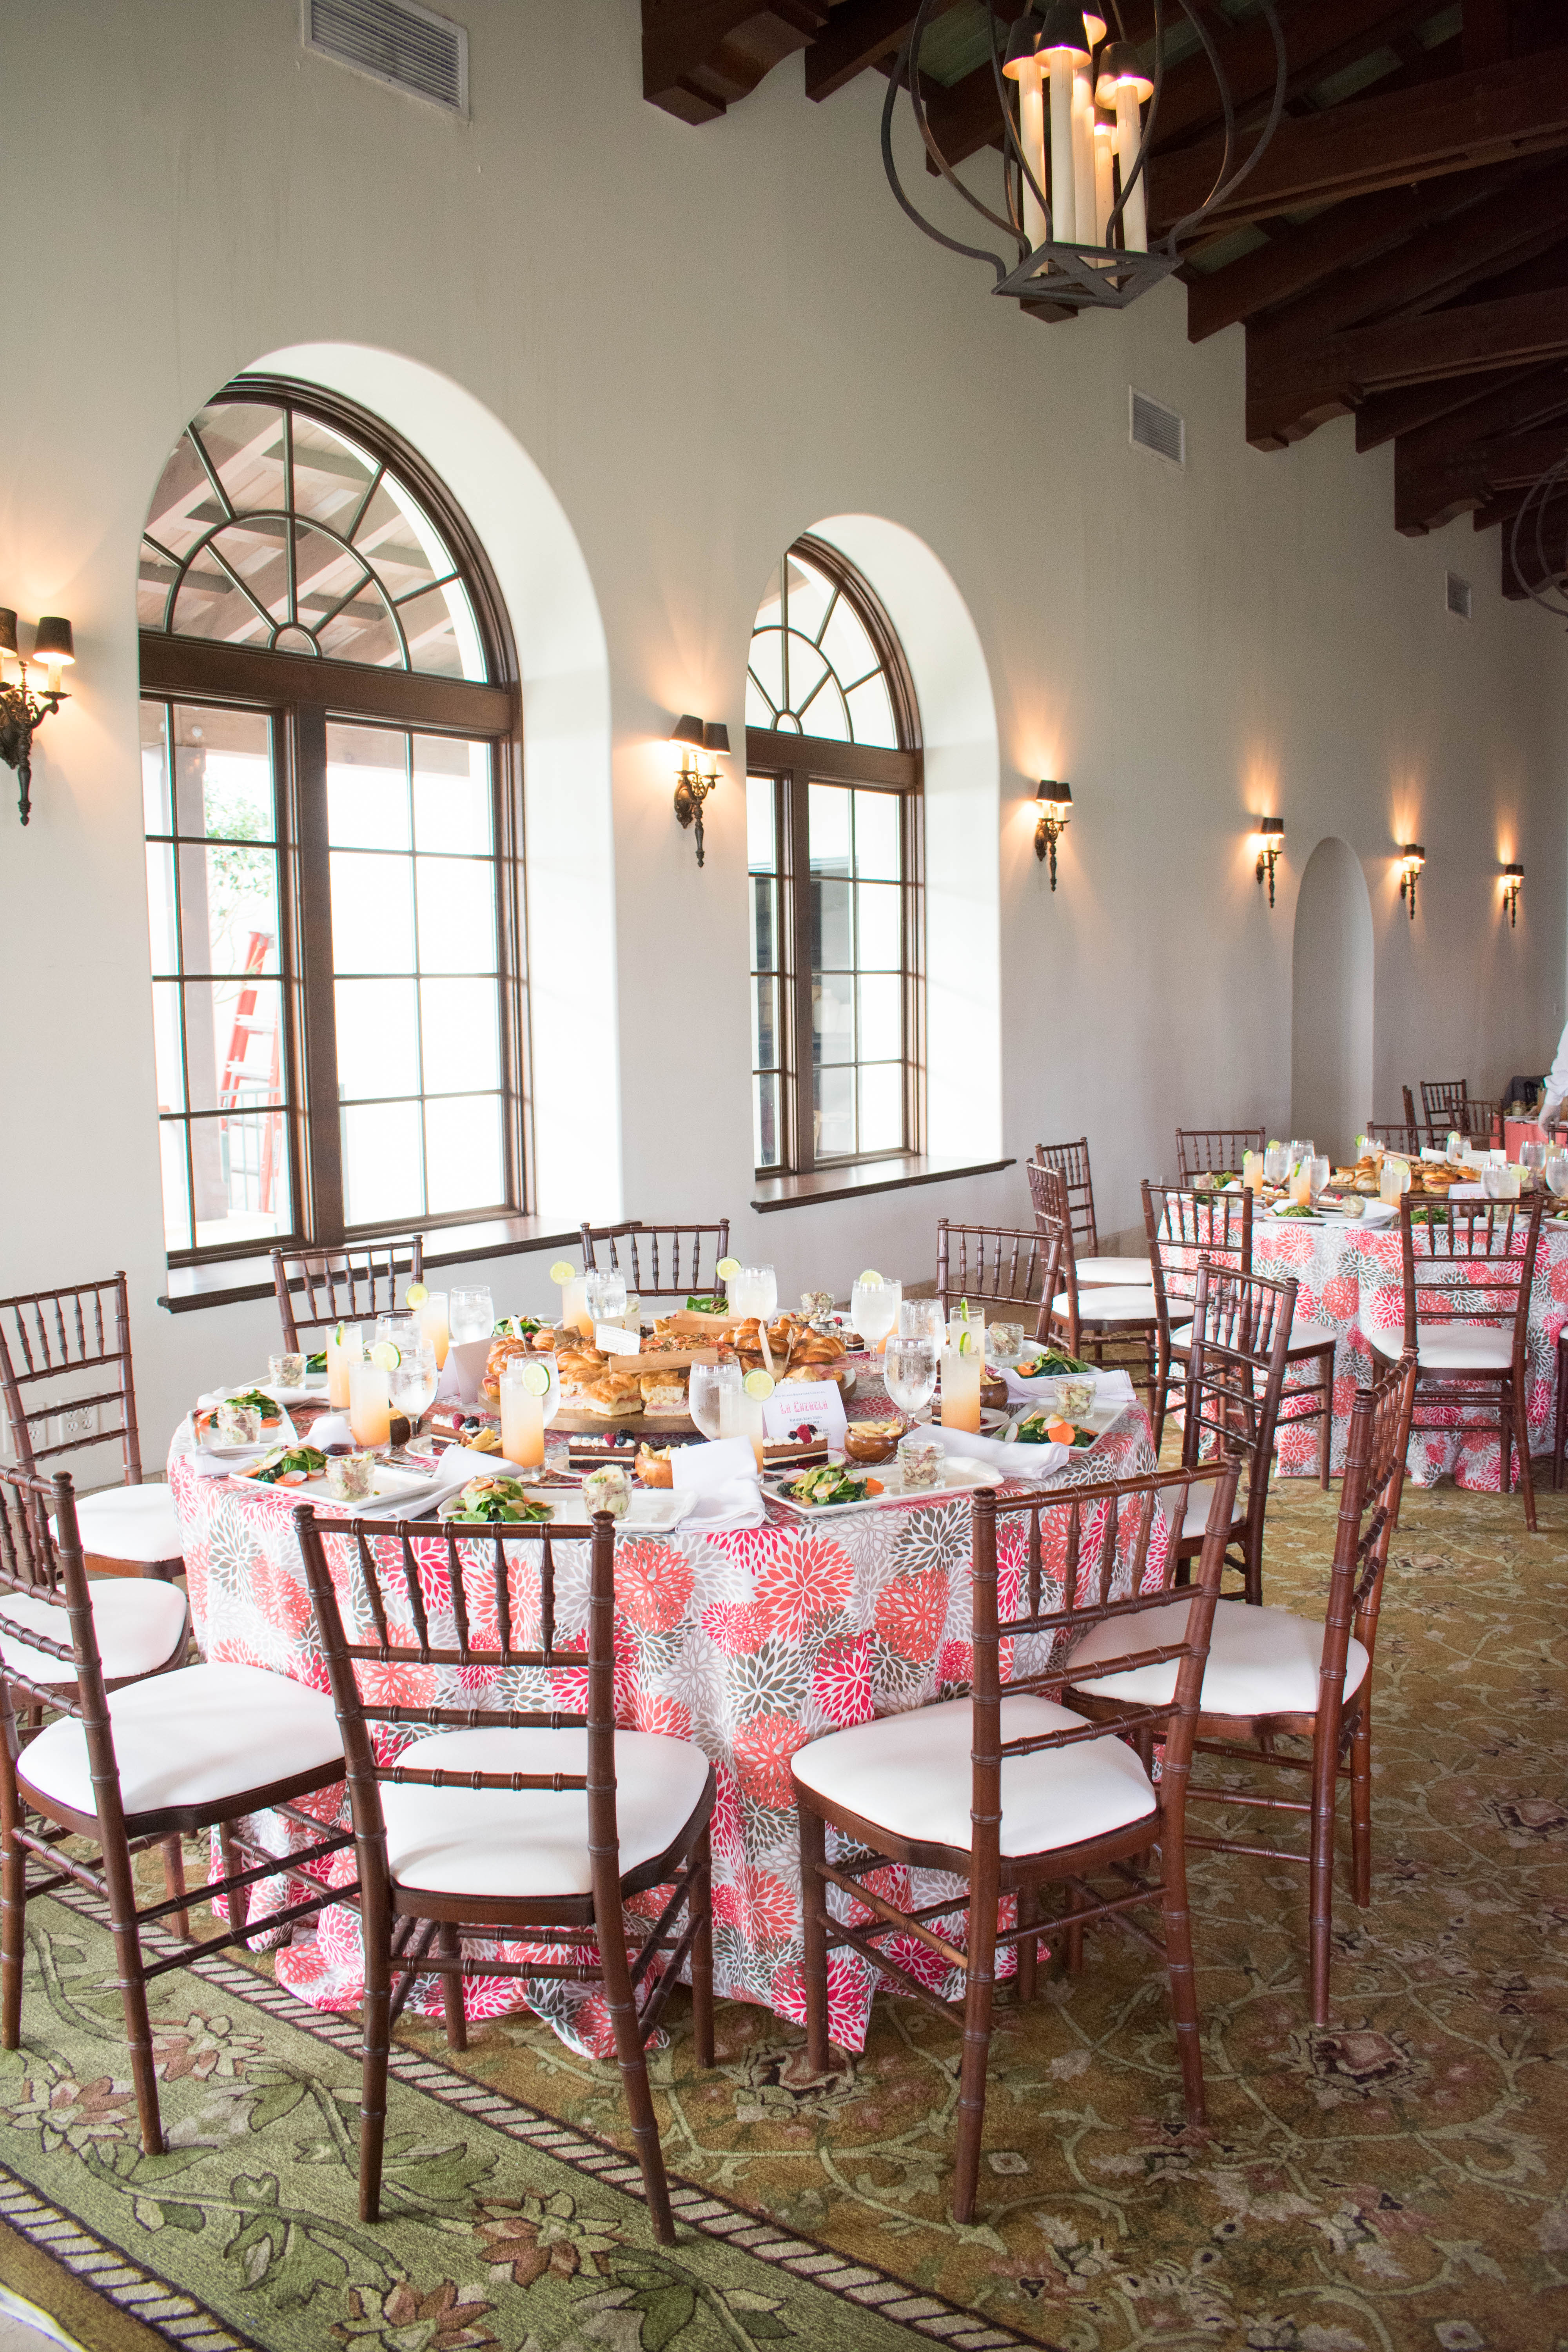 TSC Luncheon and Dinner Event by the Sea - Beachview Event Rentals and Design